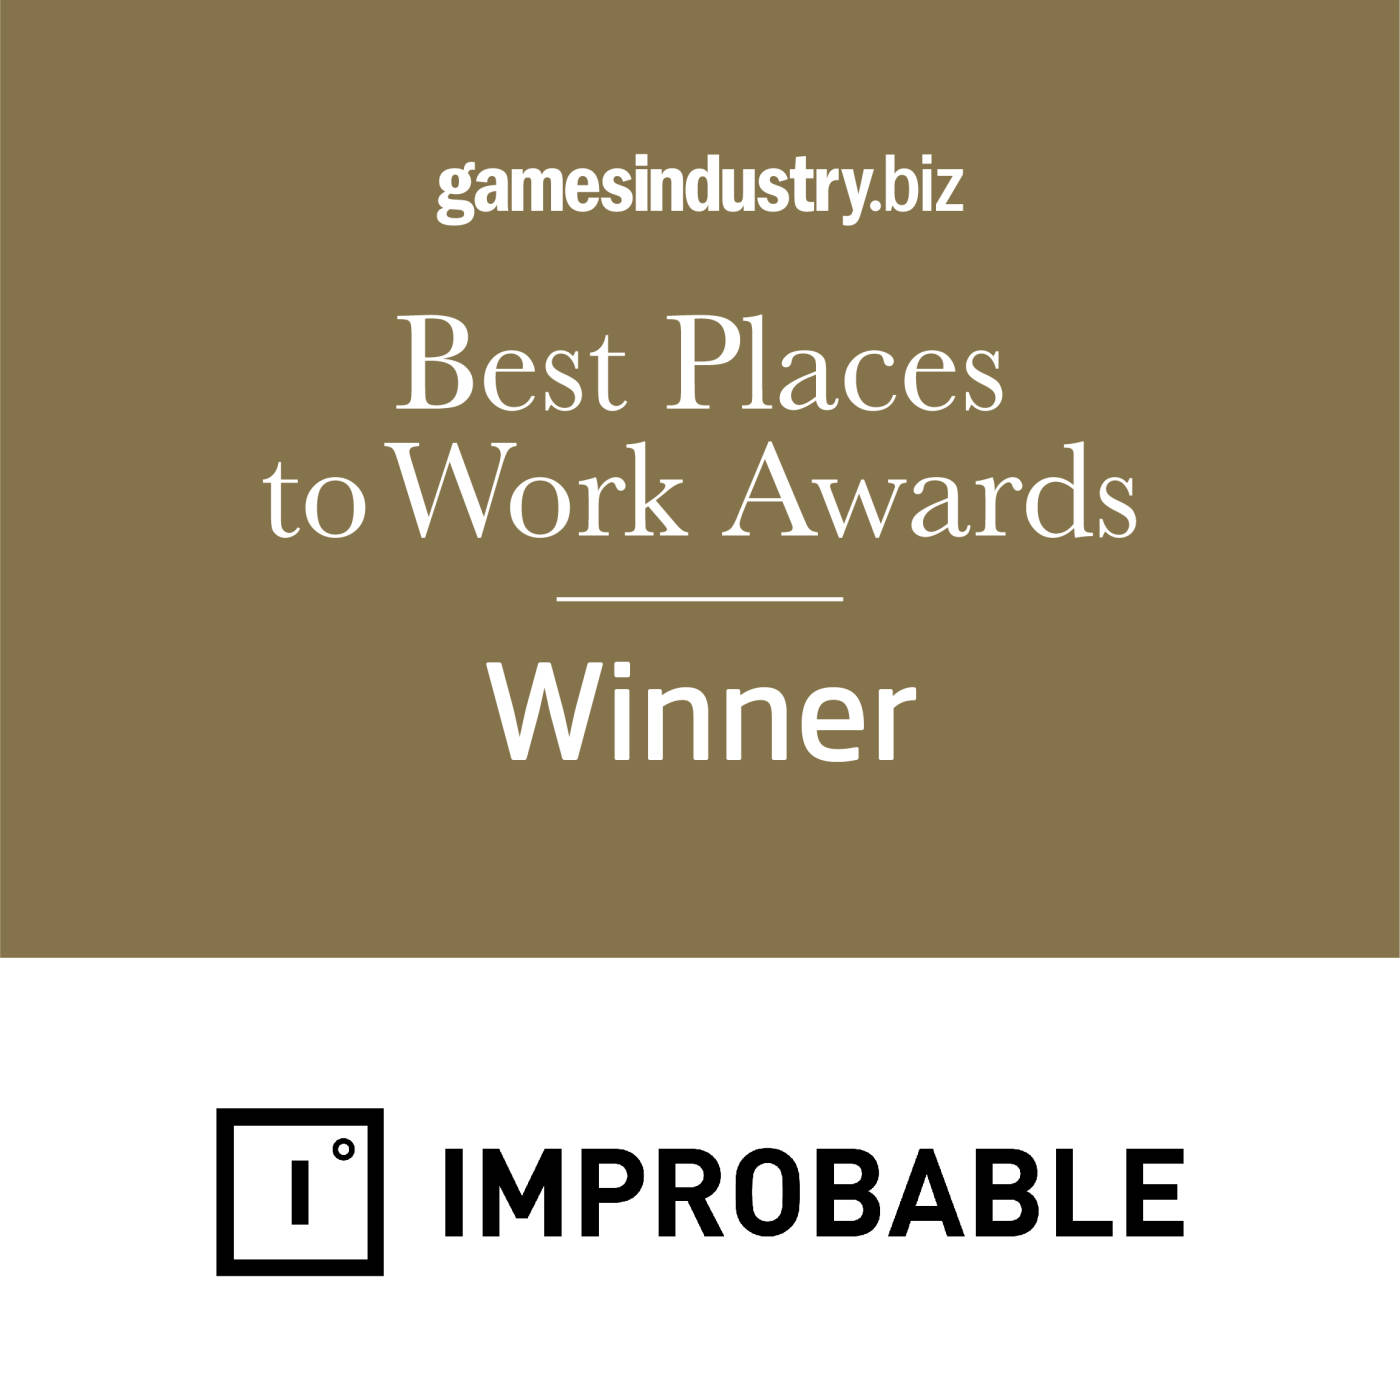 Best Places to Work Awards 2020 Winner